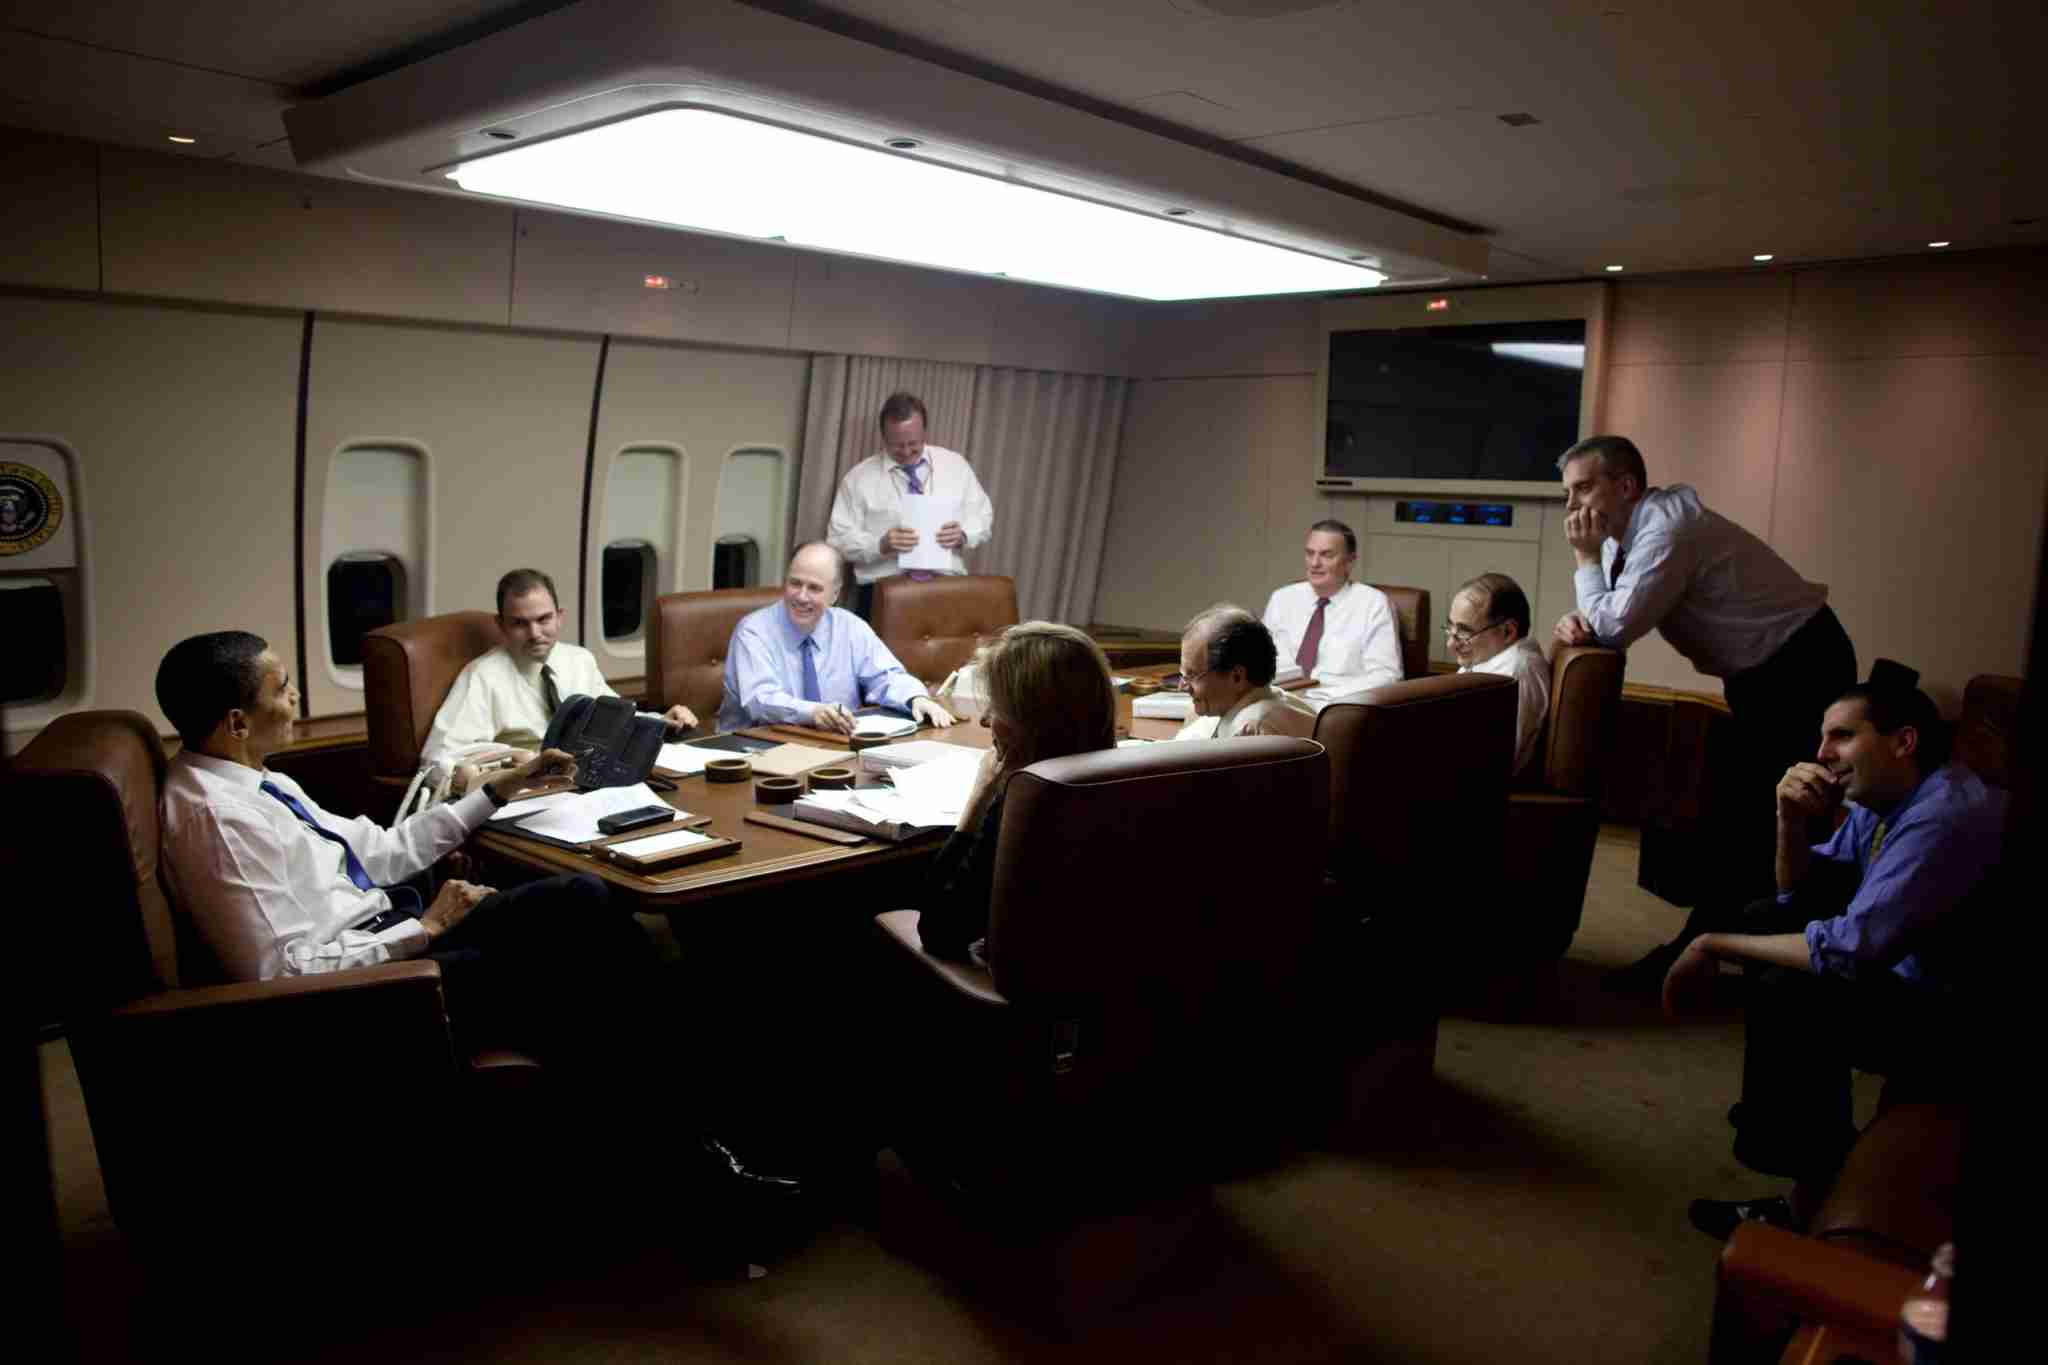 IN FLIGHT - APRIL 5: In this handout provide by the White House, U.S. President Barack Obama (L) talks with his staff aboard Air Force One during the flight from Prague, Czech Republic en route to Ankara, Turkey on April 5, 2009 in flight. Obama is serving as the 44th President of the U.S. and the first African-American to be elected to the office of President in the history of the United States. (Photo by Pete Souza/White House via Getty Images)